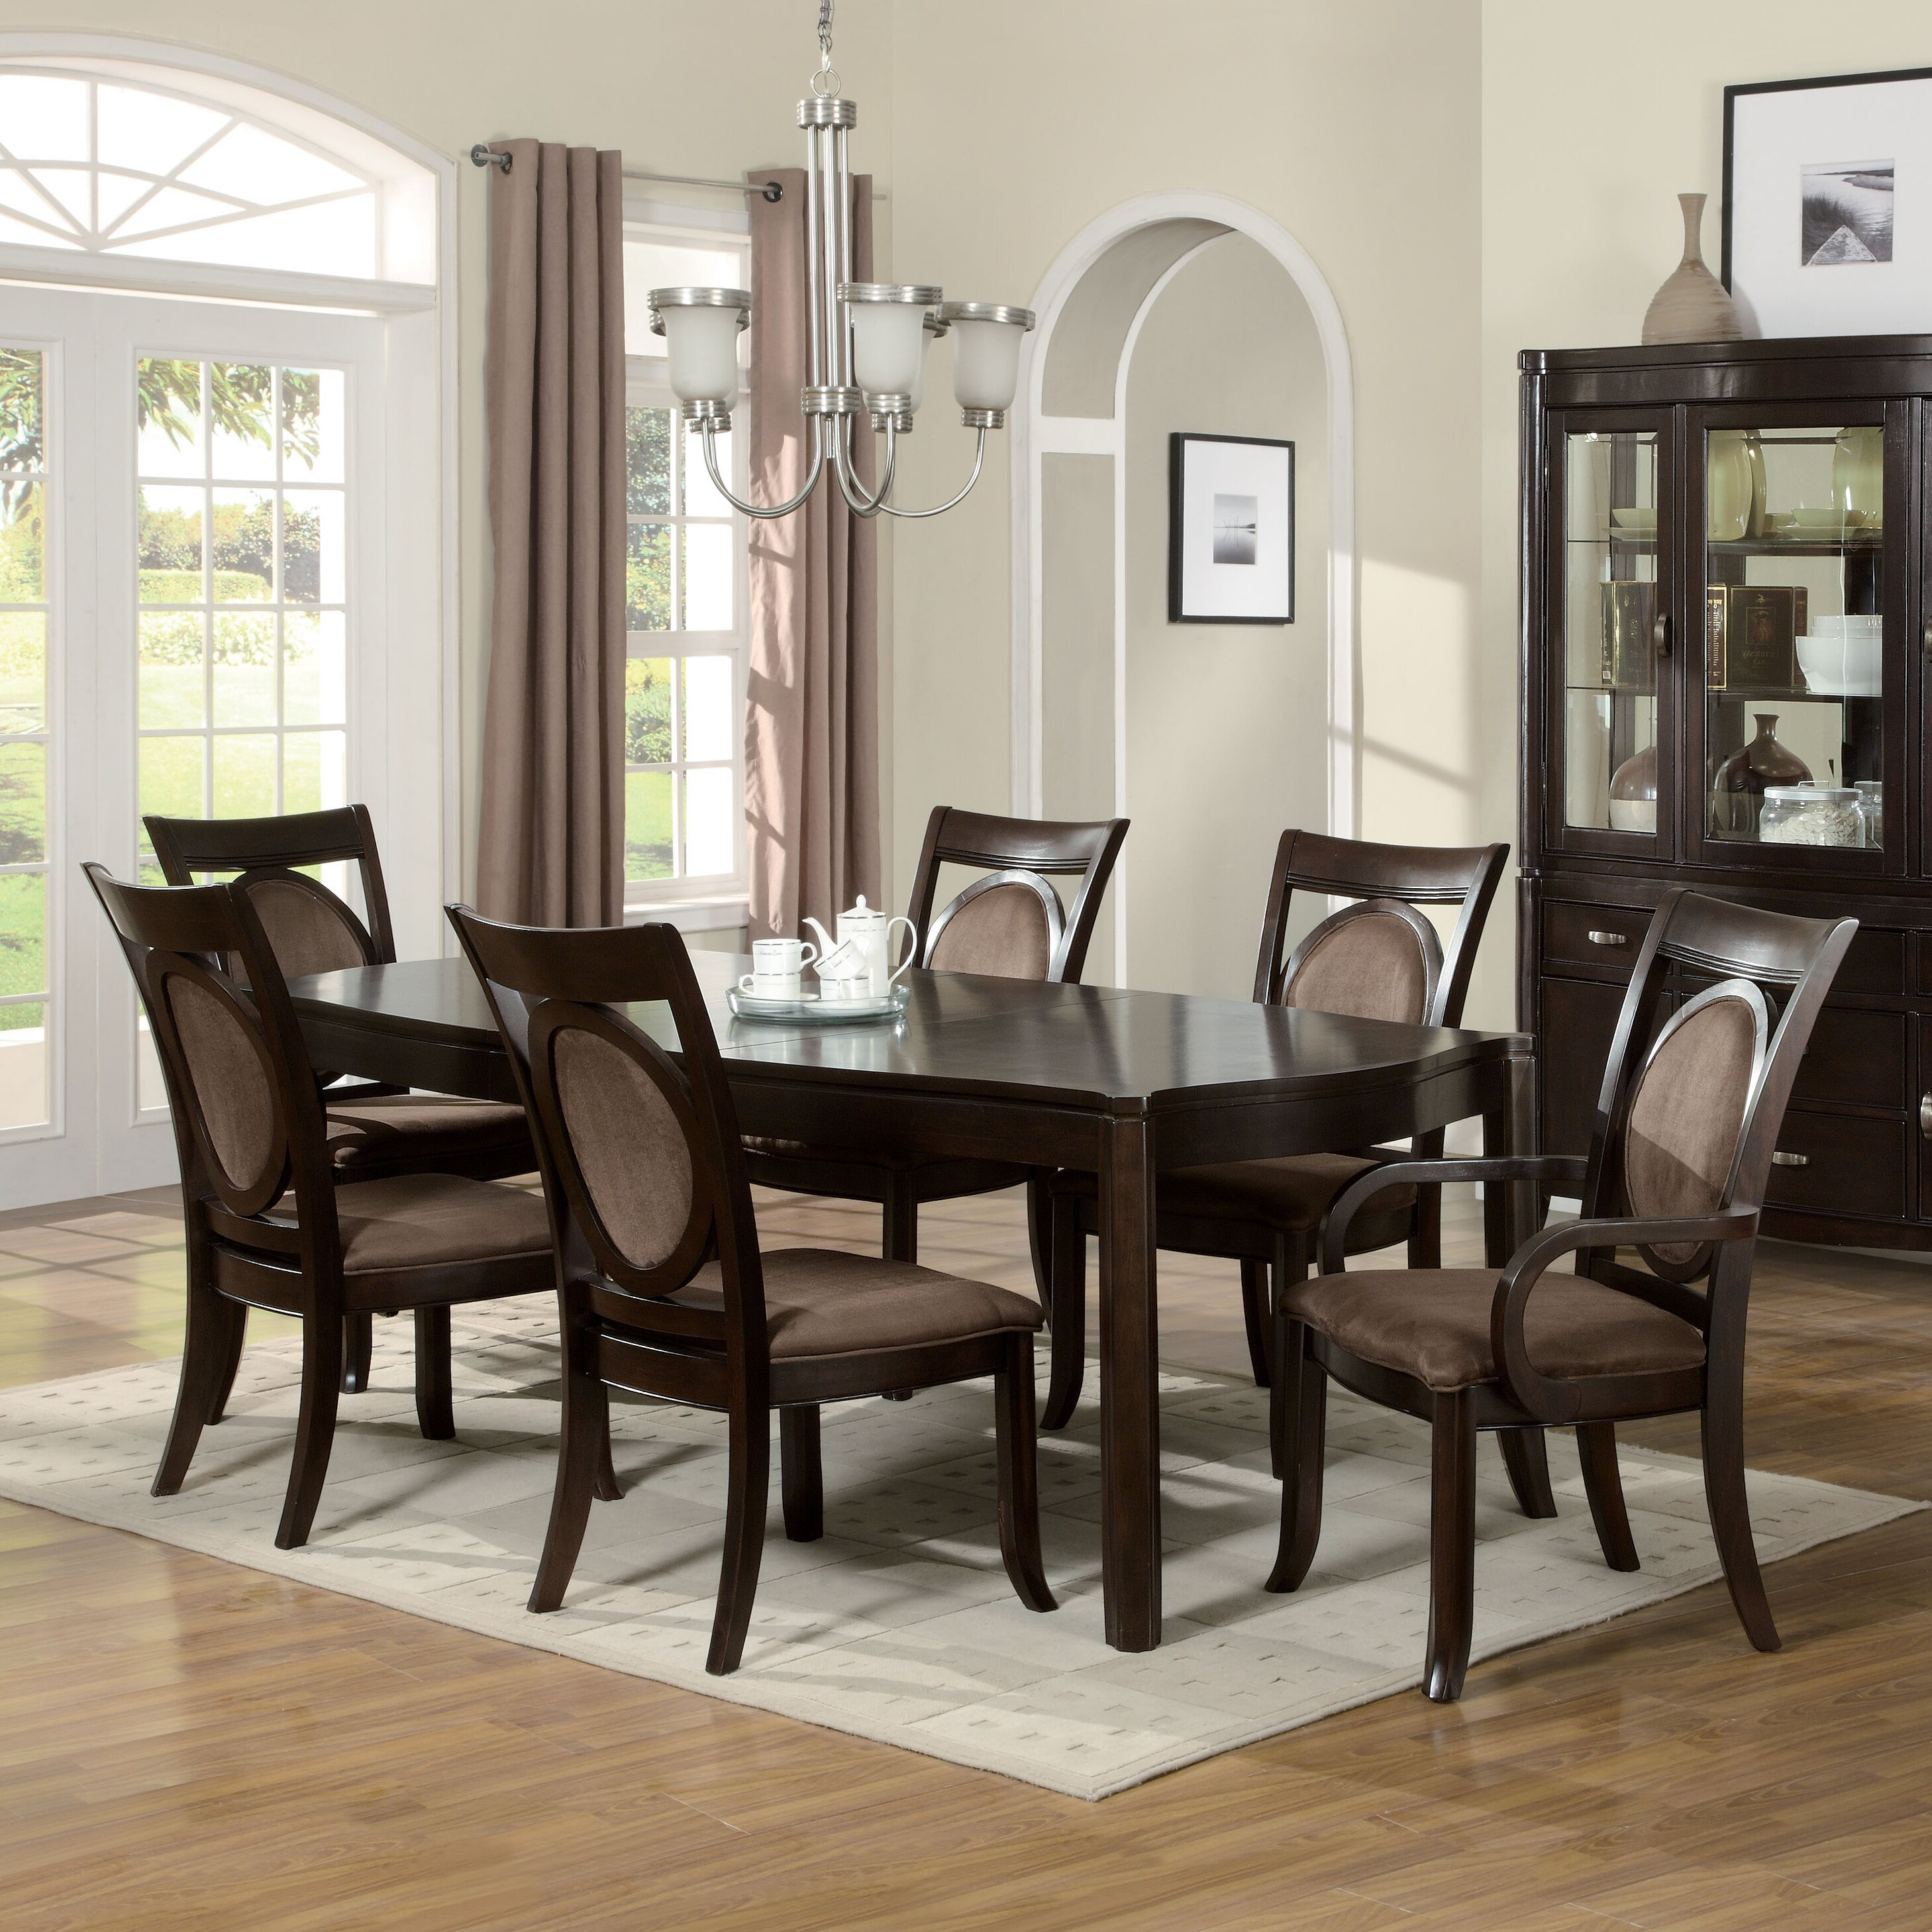 100 dining room 7 piece sets dovewood dining room for Wildon home dining